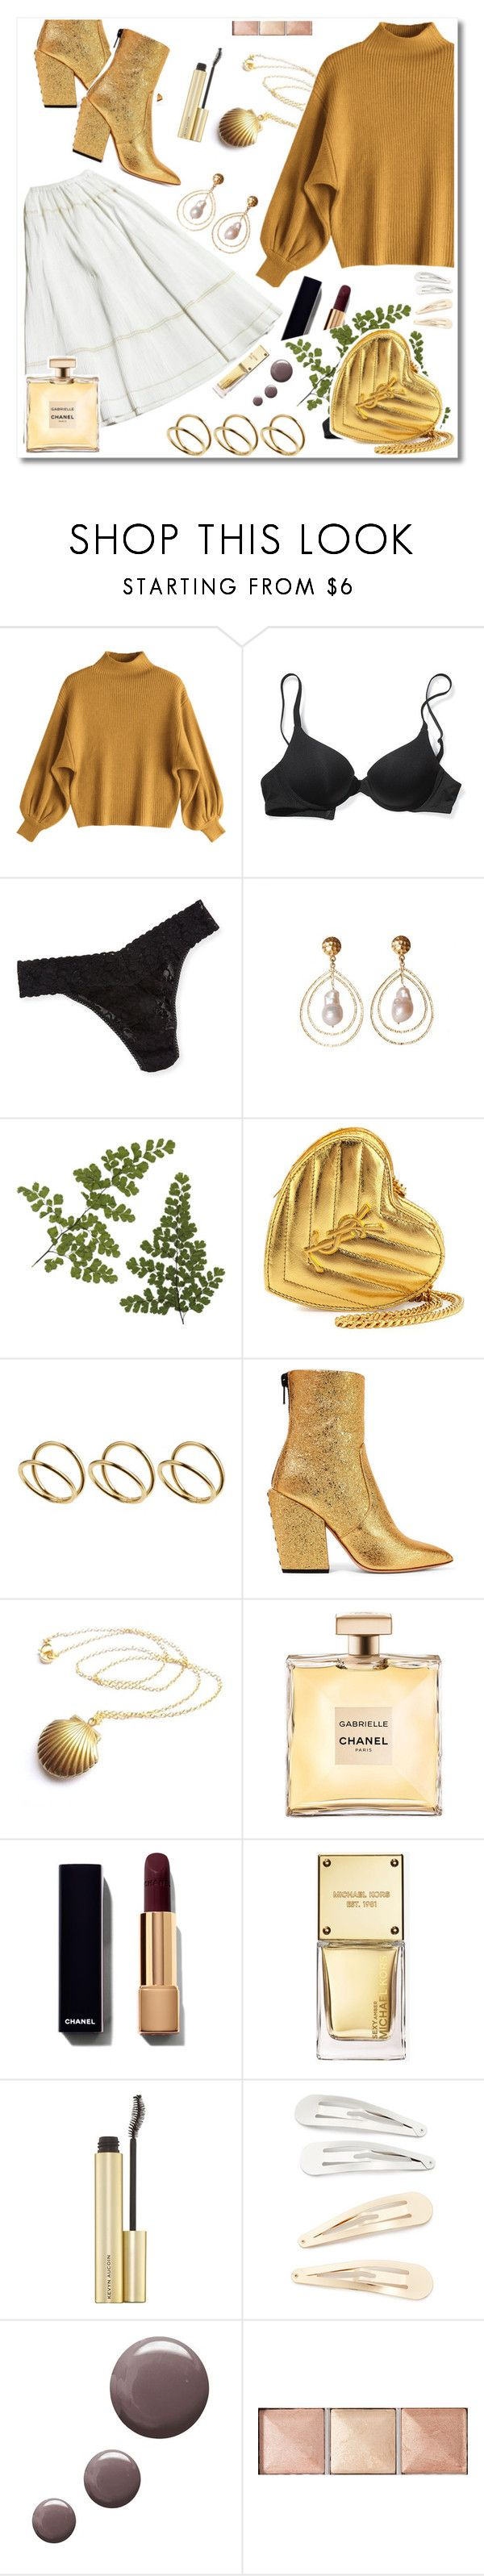 """"""\ GOLDS"""" by saintliberata ❤ liked on Polyvore featuring Victoria's Secret, Hanky Panky, Christina Greene, Yves Saint Laurent, ASOS, Petar Petrov, Michael Kors, Kitsch, Topshop and Hourglass Cosmetics""600|3194|?|en|2|8d240ba6b71e859b4fb782383b7f45d4|False|UNLIKELY|0.3469737768173218